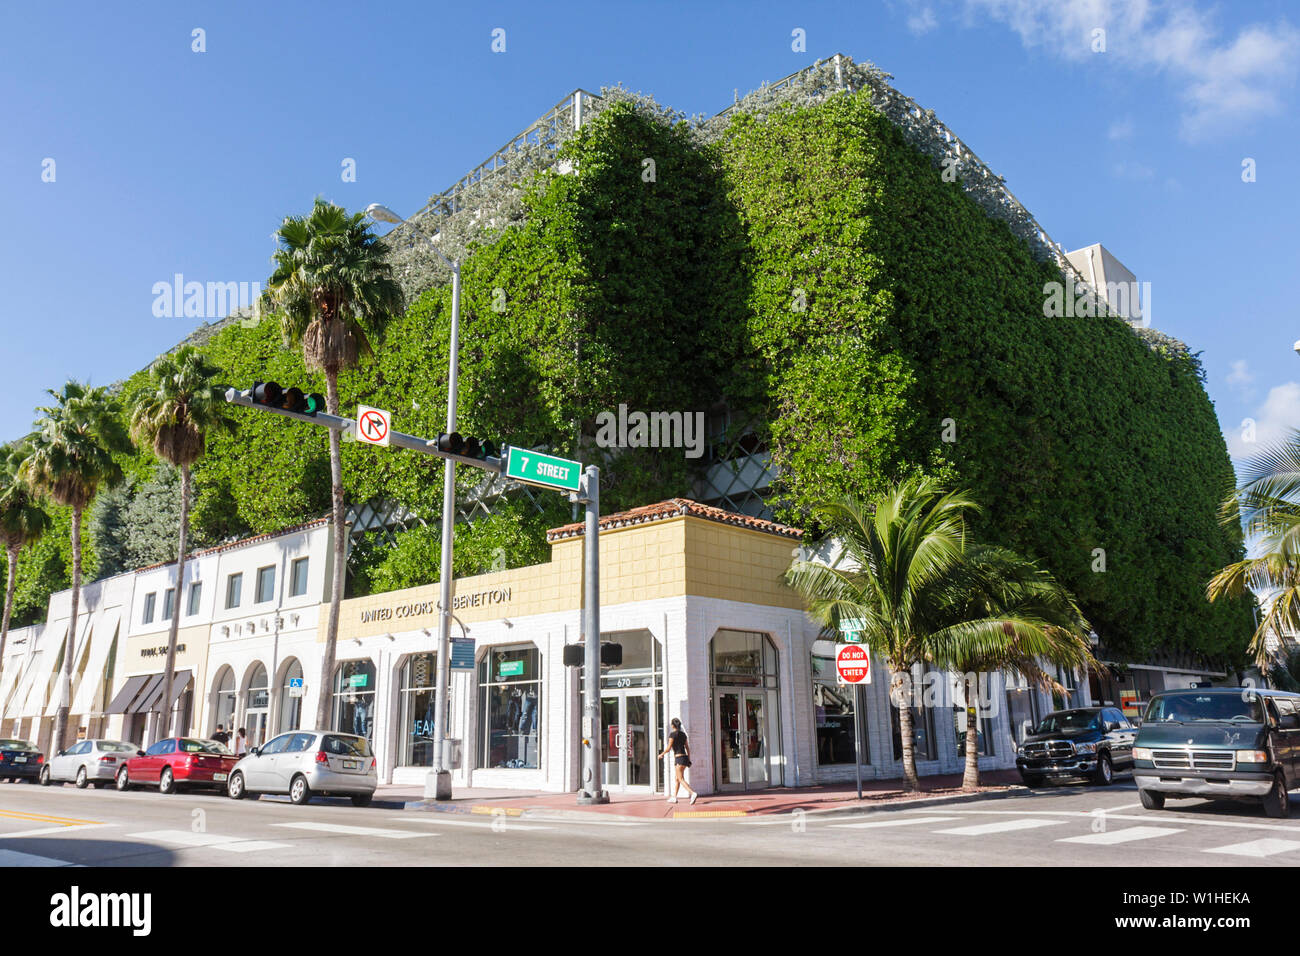 Miami Beach Fl Usa 7th High Resolution Stock Photography And Images Alamy